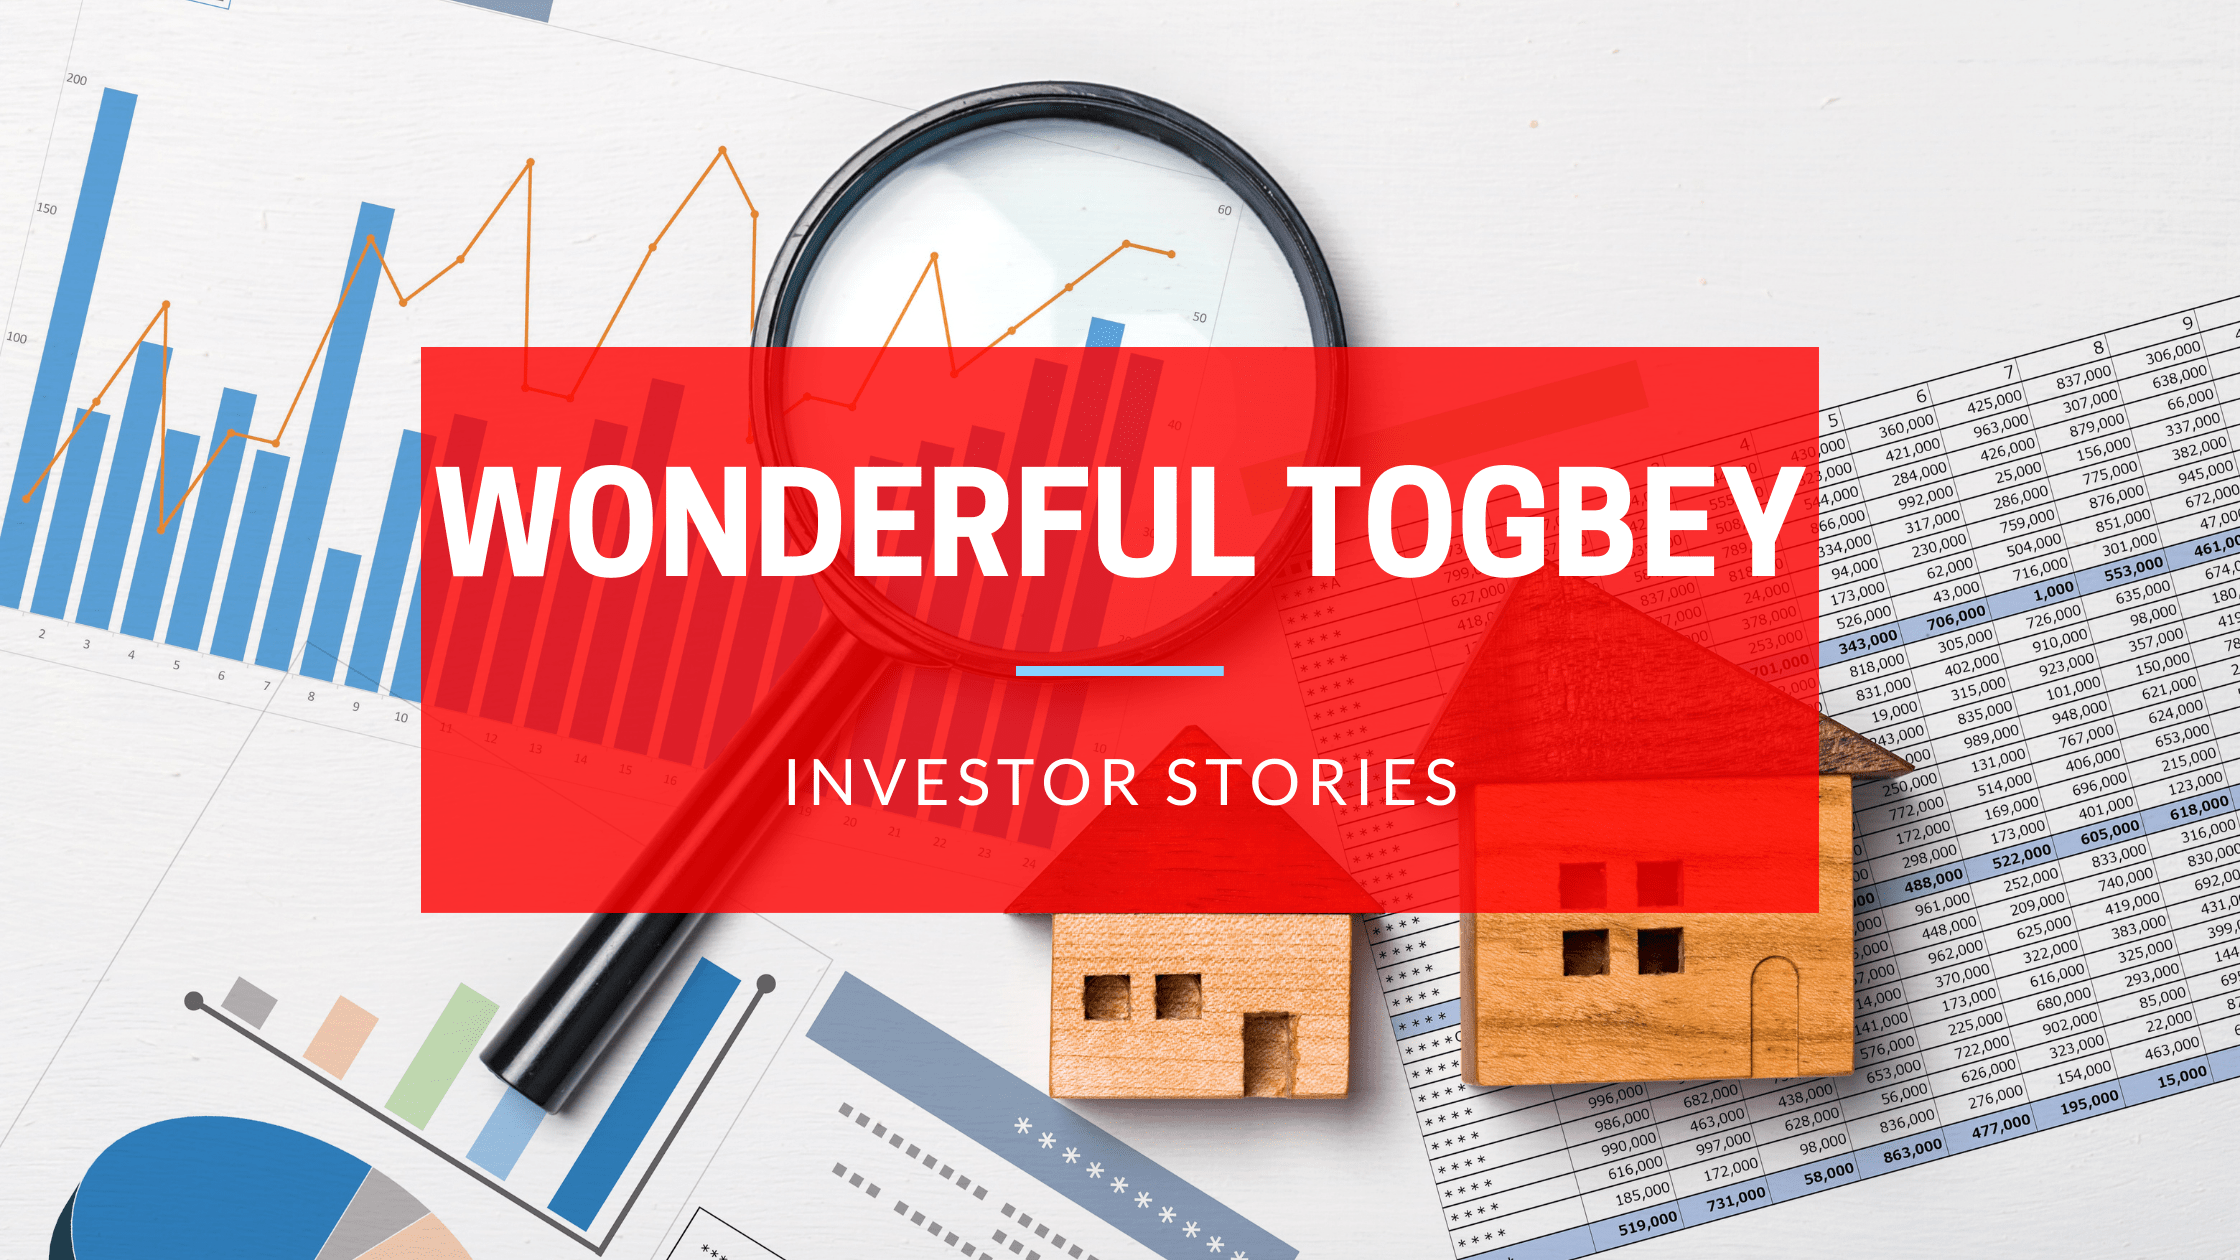 INVESTOR STORIES FEATURING WONDERFUL TOGBEY